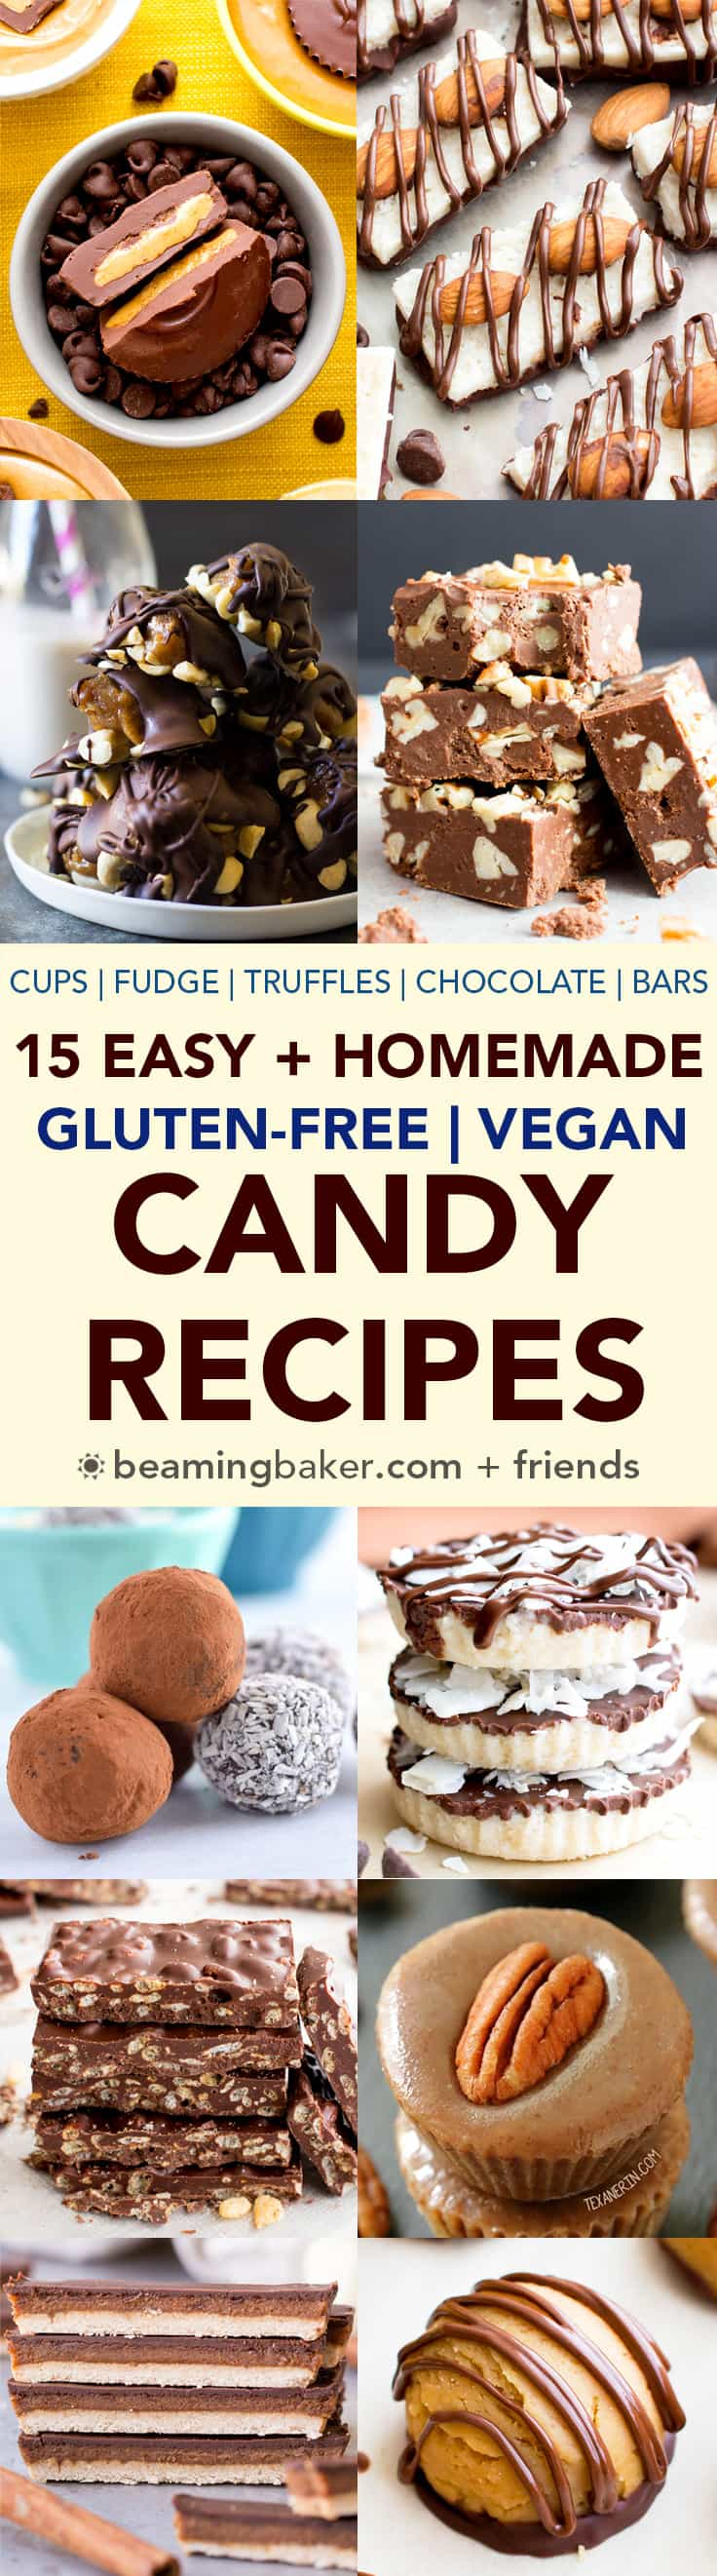 15 Easy Gluten Free Vegan Homemade Candy Recipes (V, GF): a decadent collection of the tastiest homemade candy recipes to satisfy your sweet tooth! #Vegan #GlutenFree #DairyFree #Paleo #Candy #Dessert | BeamingBaker.com